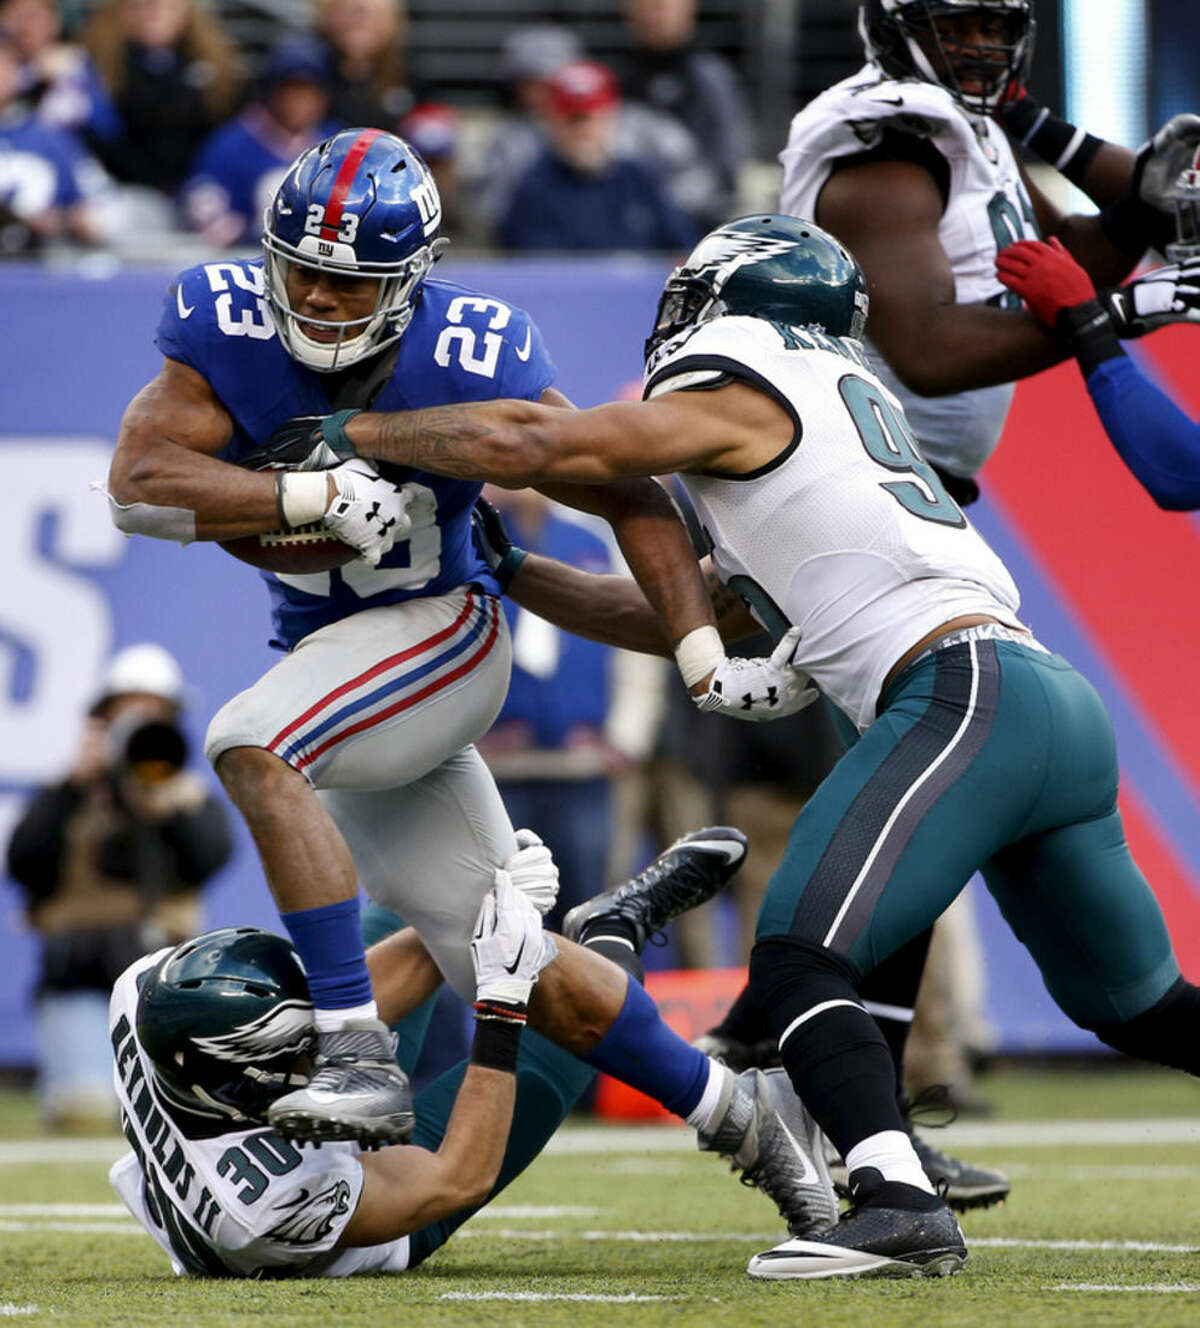 New York Giants running back Rashad Jennings (23) runs the ball against the Philadelphia Eagles during the third quarter of an NFL football game, Sunday, Jan. 3, 2016, in East Rutherford, N.J. (AP Photo/Kathy Willens)